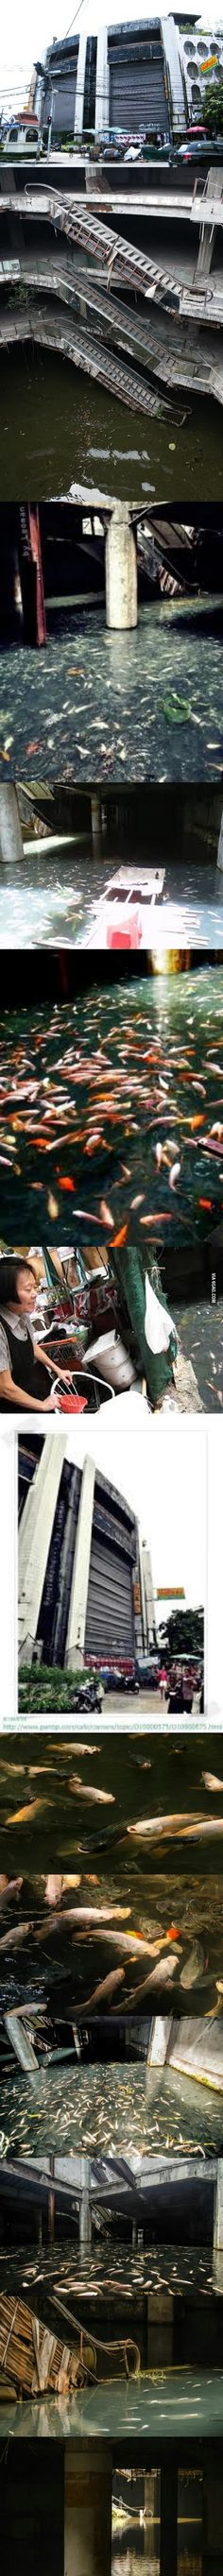 [METRO KOI] Thousand of fish in an abandoned mall building.